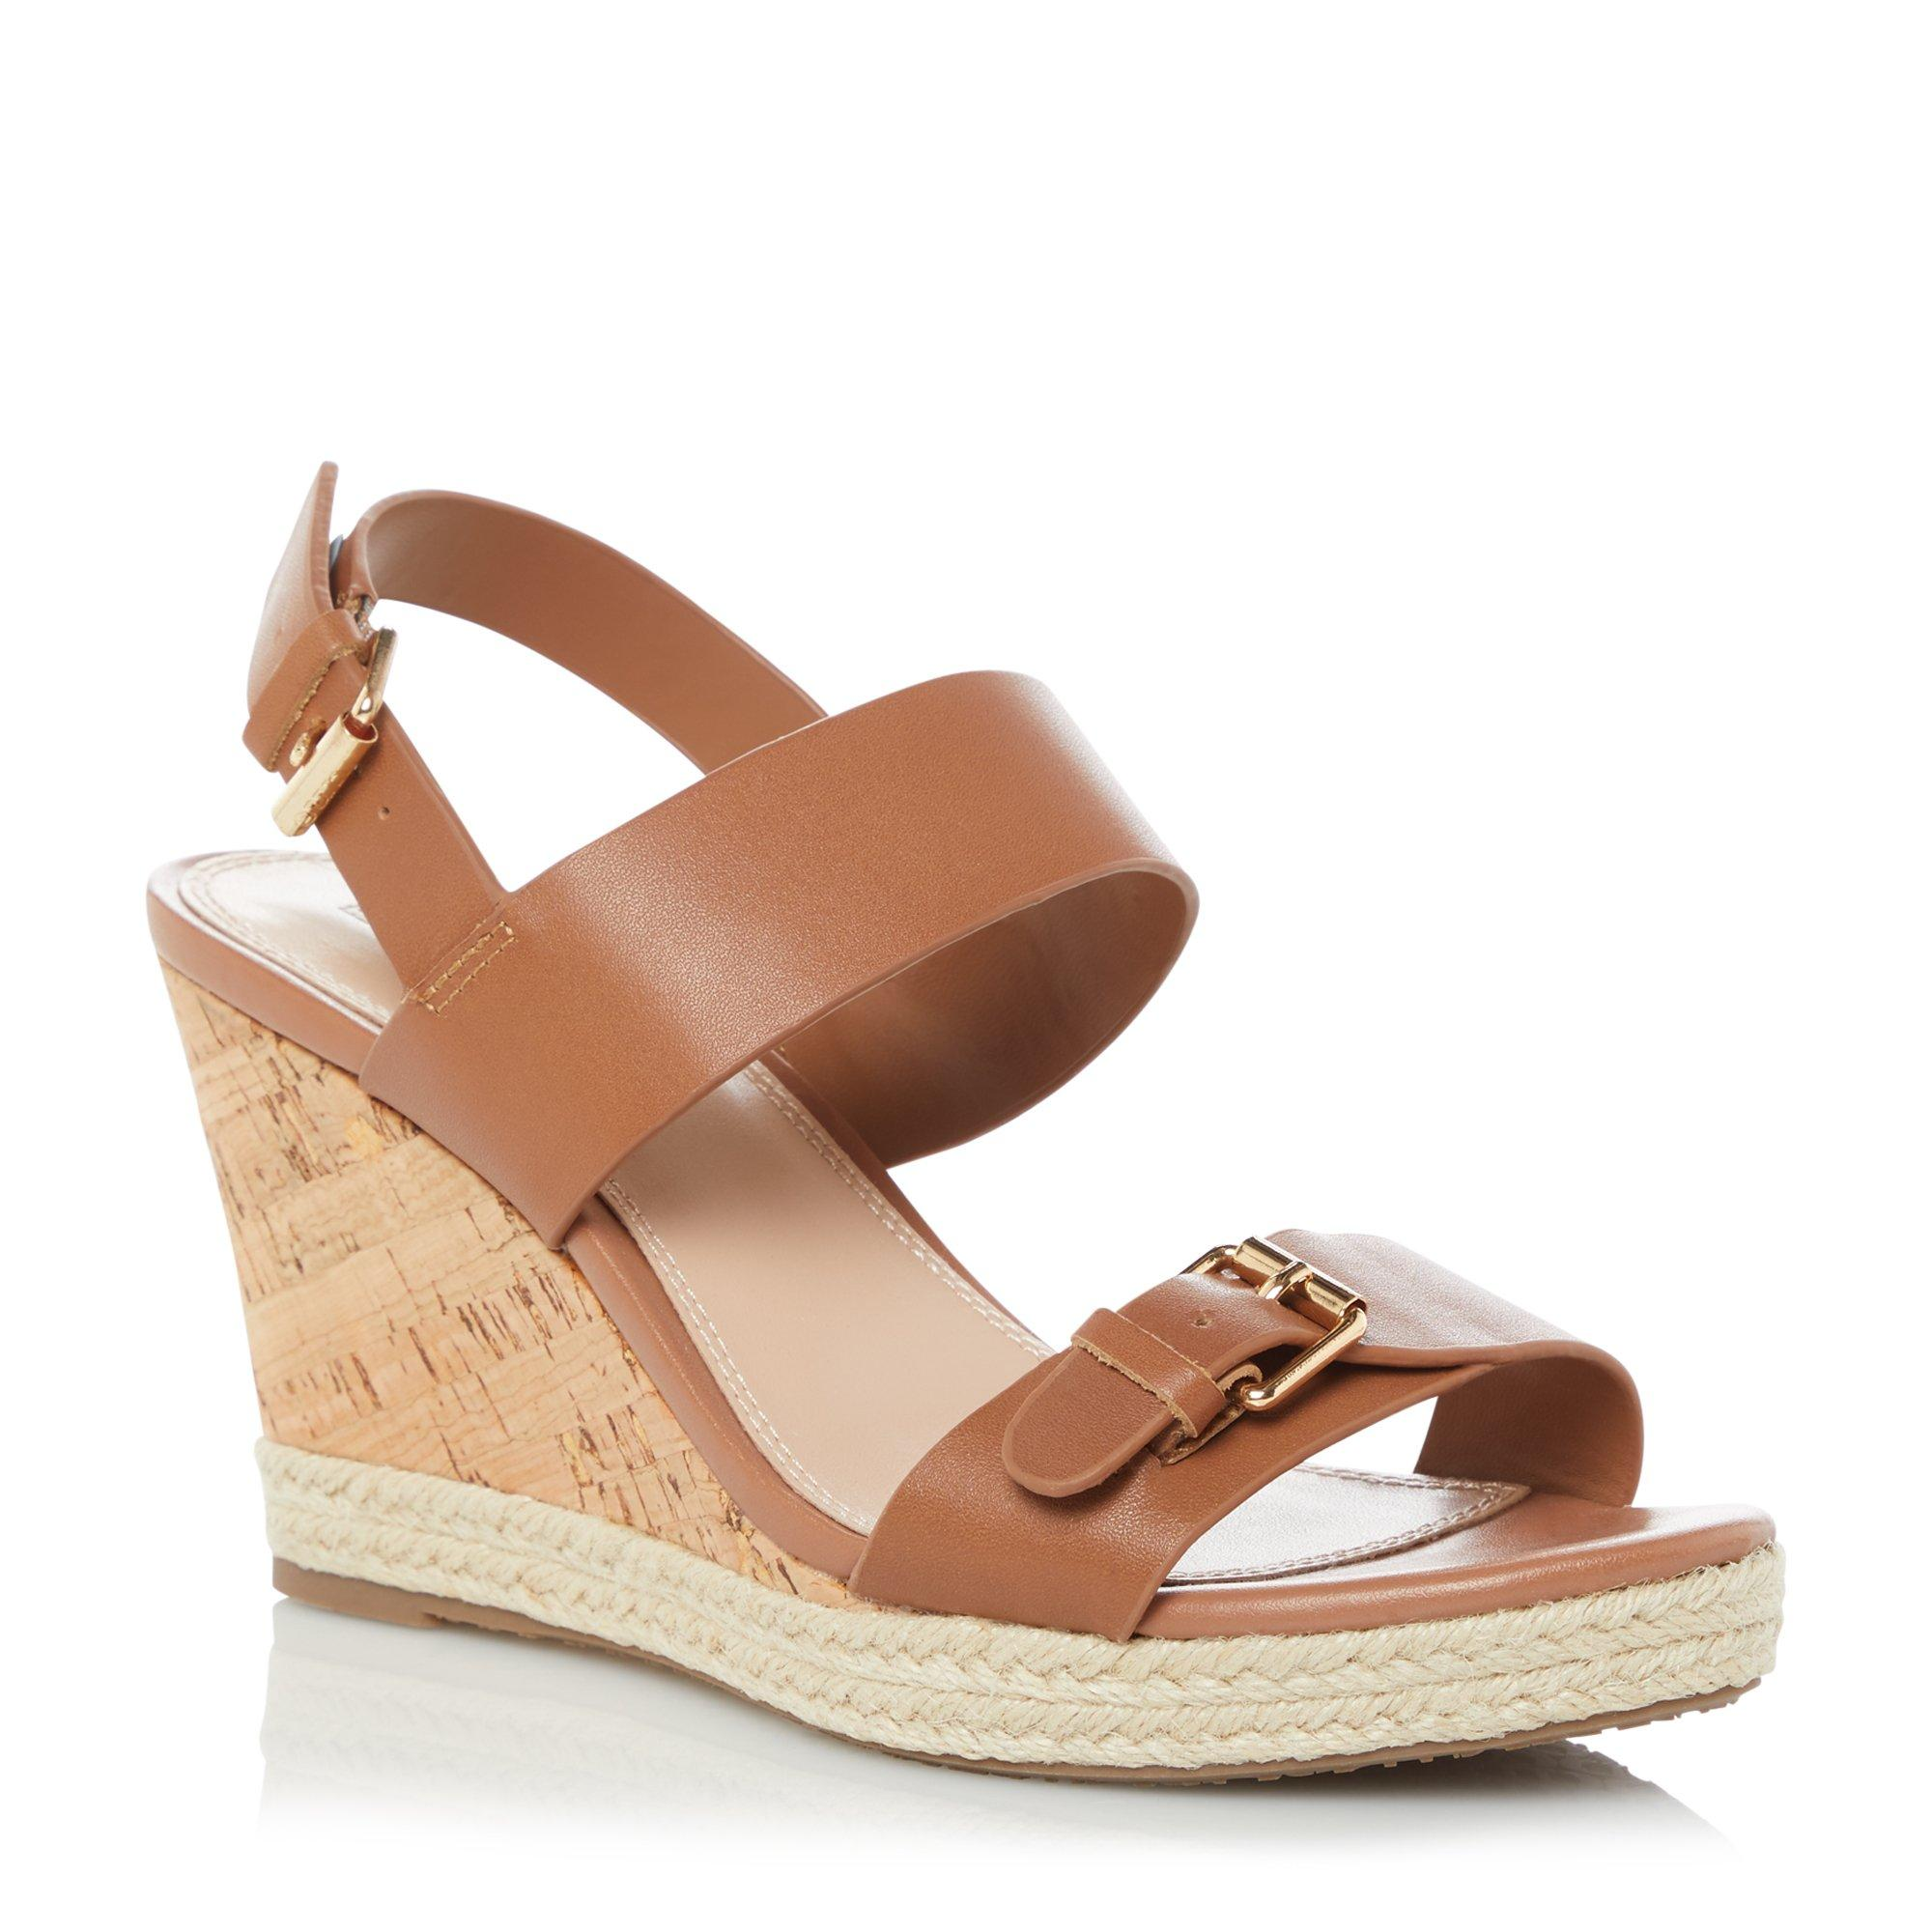 KENDYLL - Buckle Strap Wedge